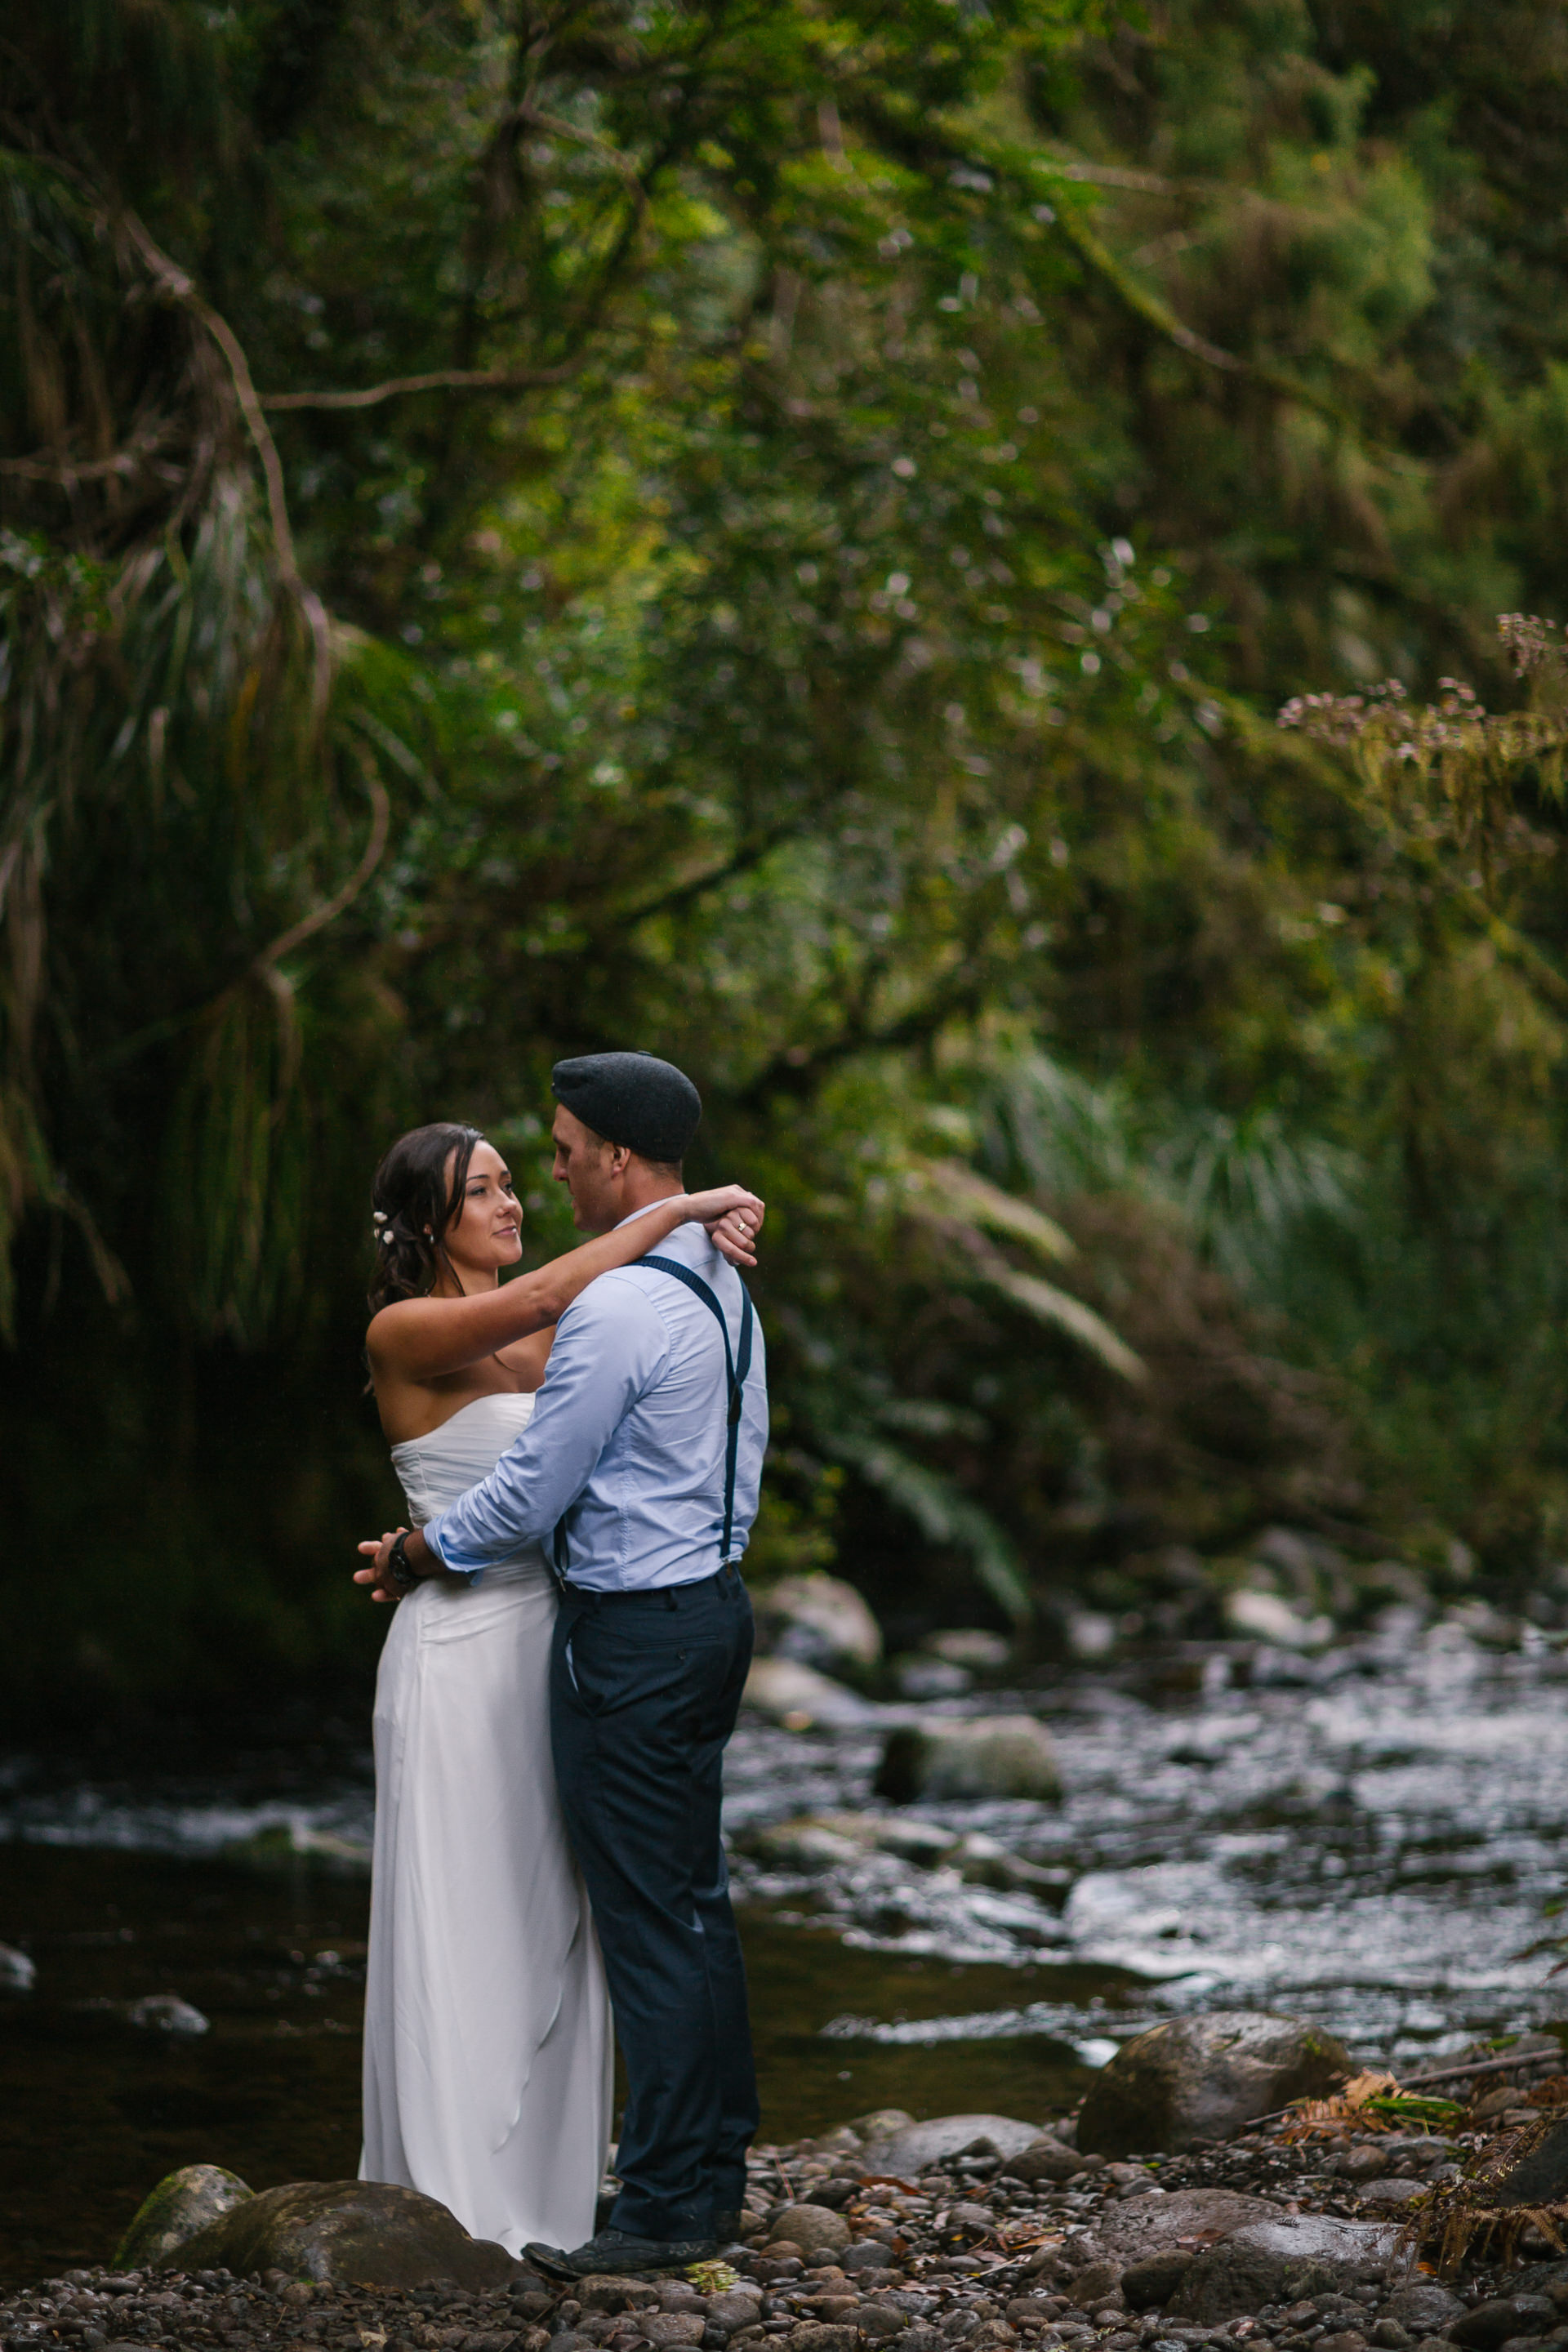 The_Official_Photographers_shannon-Noel-Pirongia-forest-park-wedding_MG_3867